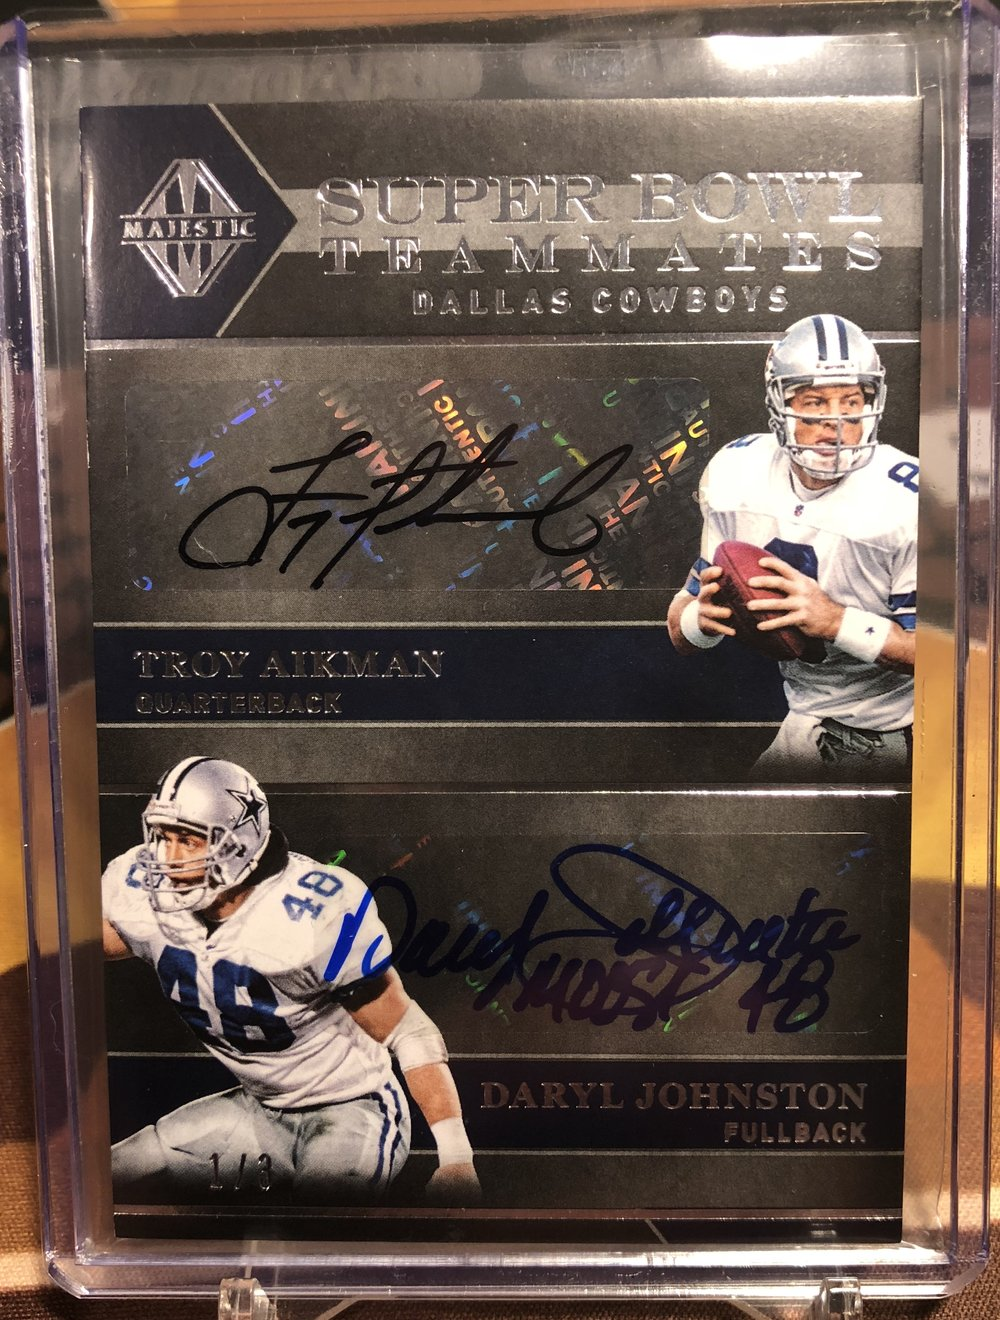 2018 Panini Majestic Super Bowl Teammates Aikman/Johnston/Novacek/Allen Quad Auto 1/3